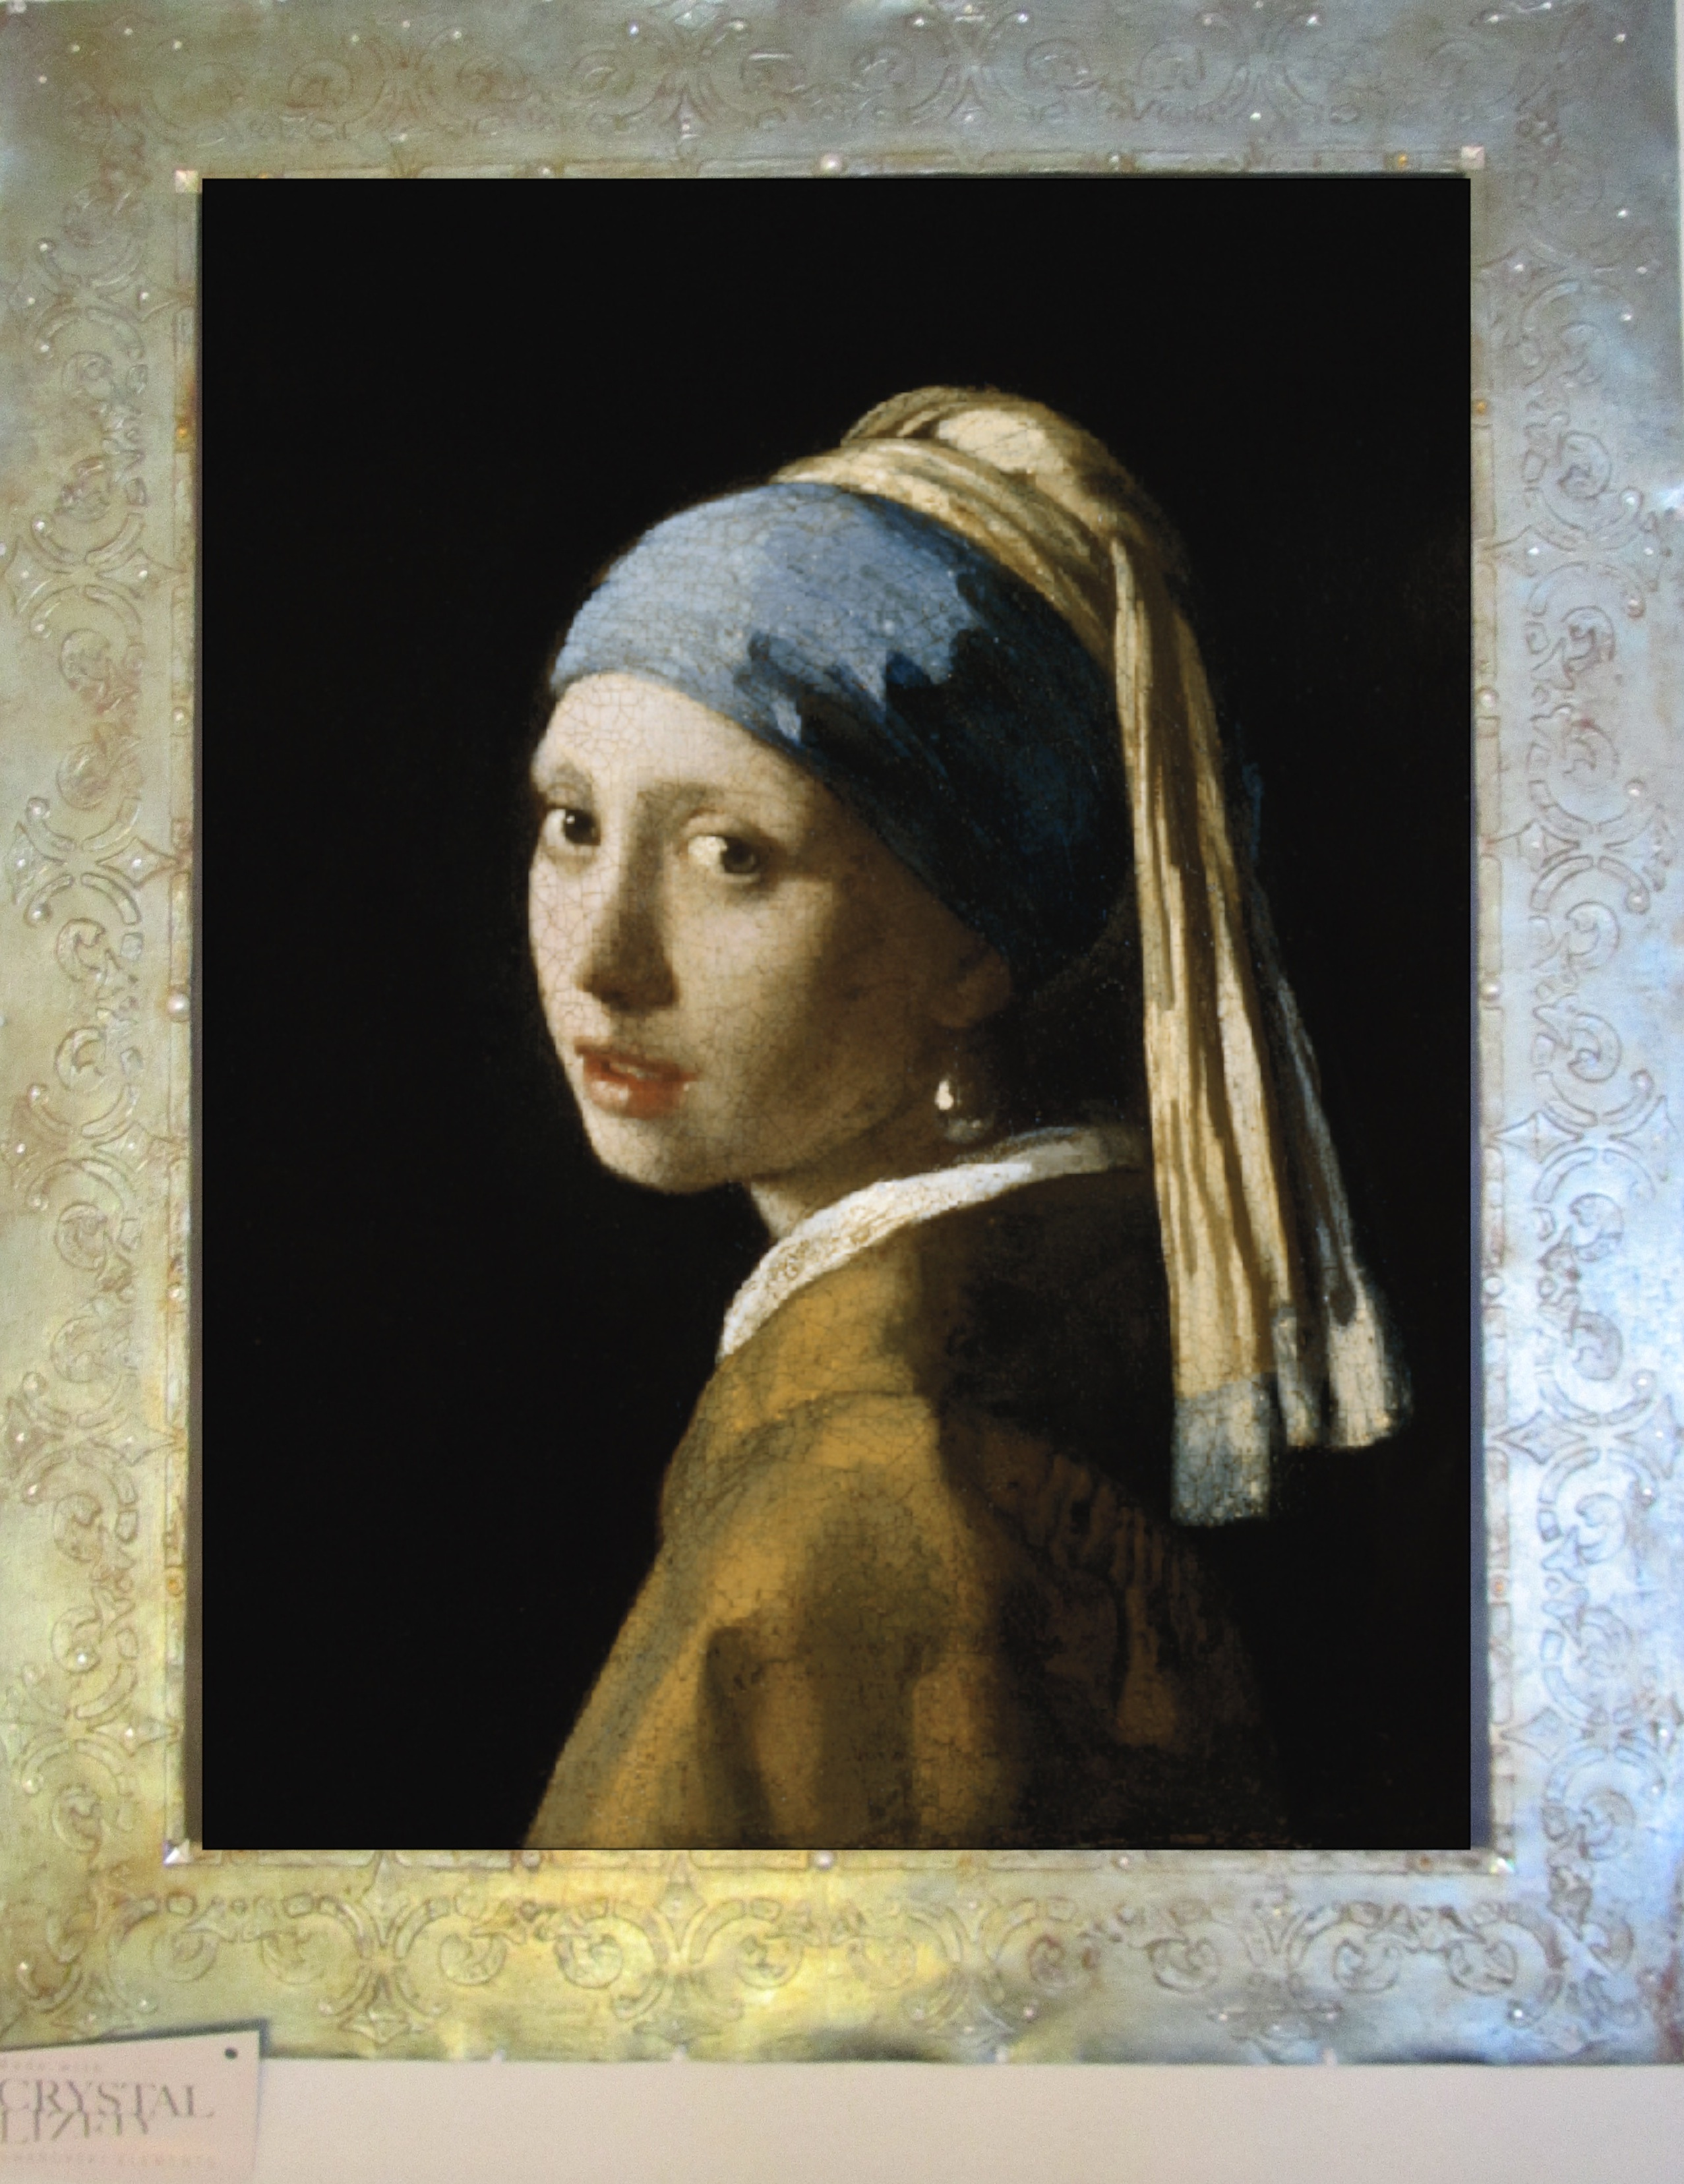 """Vermeer's """"The Girl With the Pearl Earring"""" 